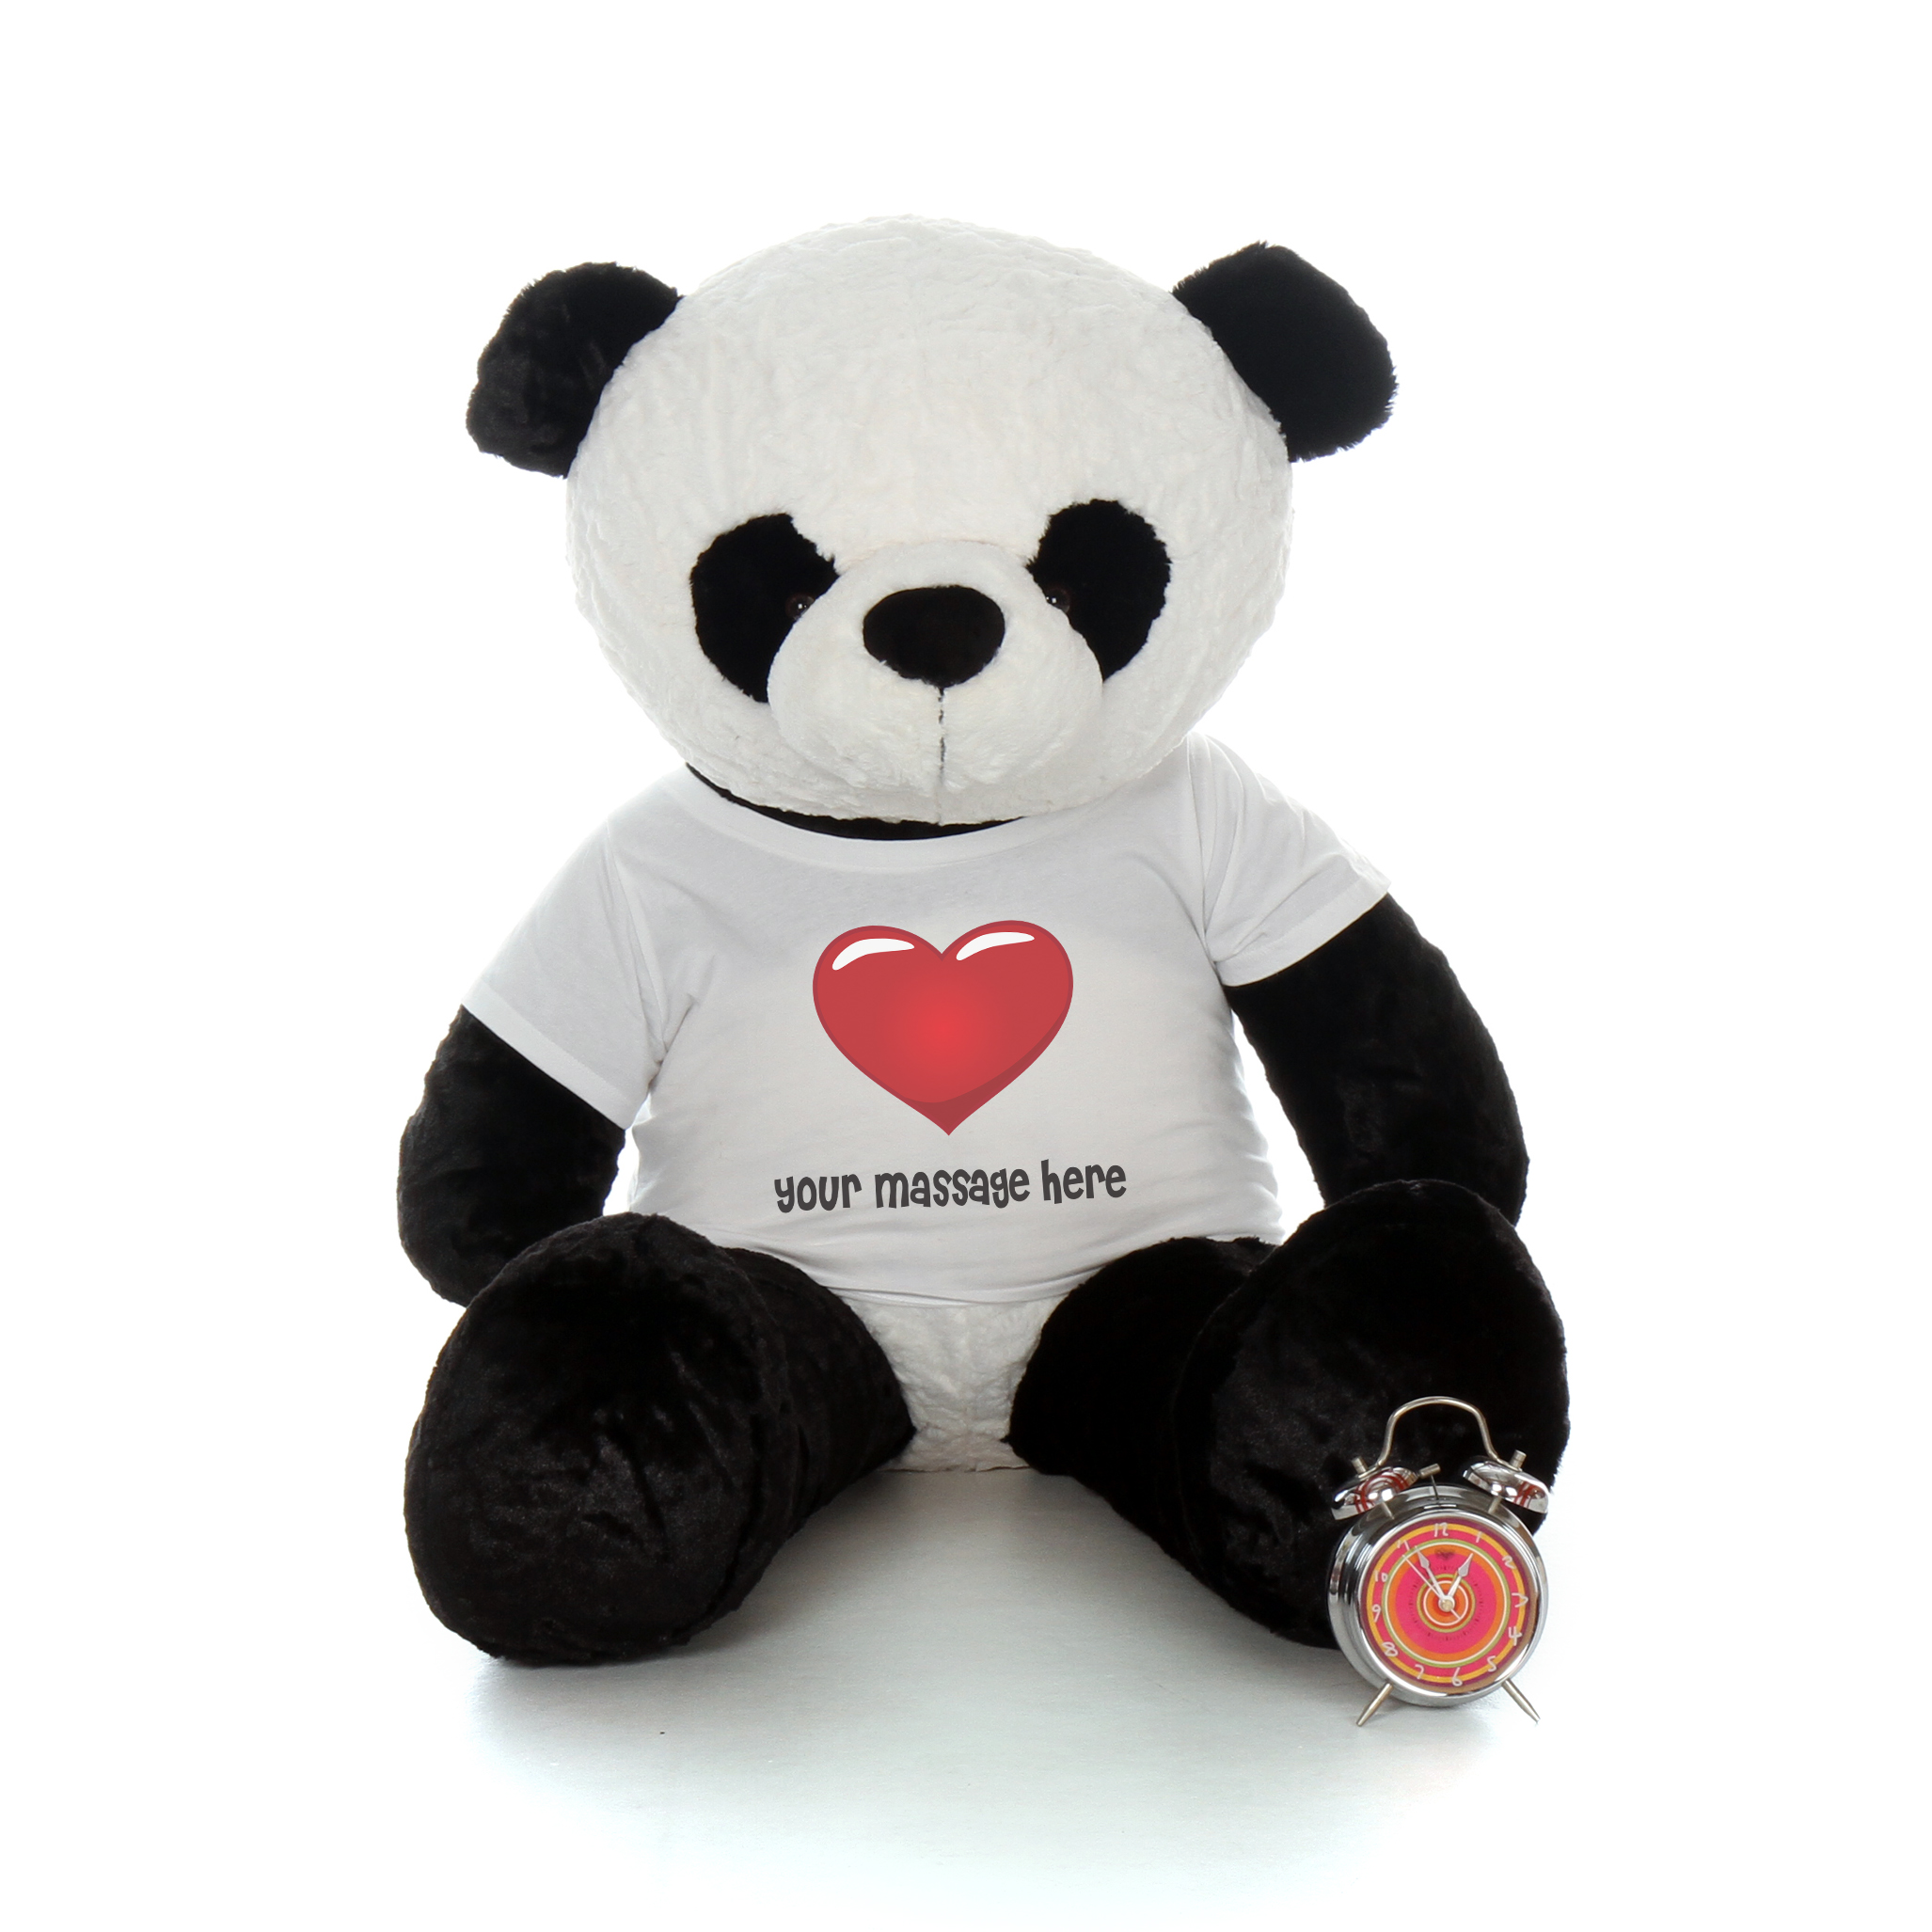 48in-panda-red-heart-t-shirt-1.jpg